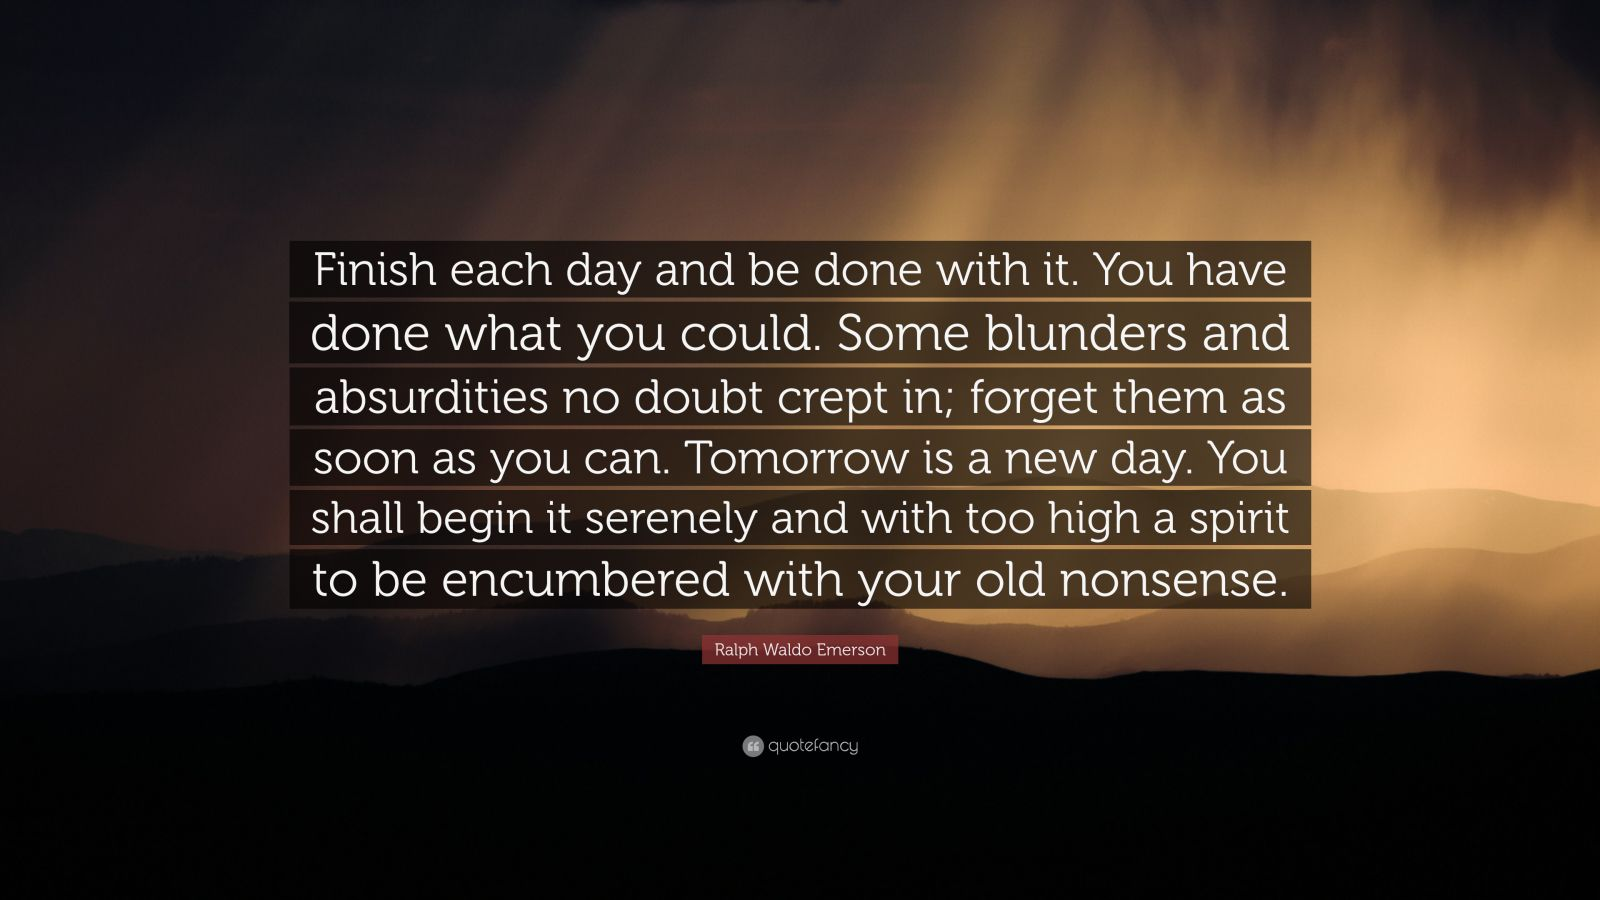 "Ralph Waldo Emerson Quote: ""Finish each day and be done with it. You have done what you could.  Some blunders and absurdities no doubt crept in; forget them as soon as you can. Tomorrow is a new day.  You shall begin it serenely and with too high a spirit to be encumbered with your old nonsense."""